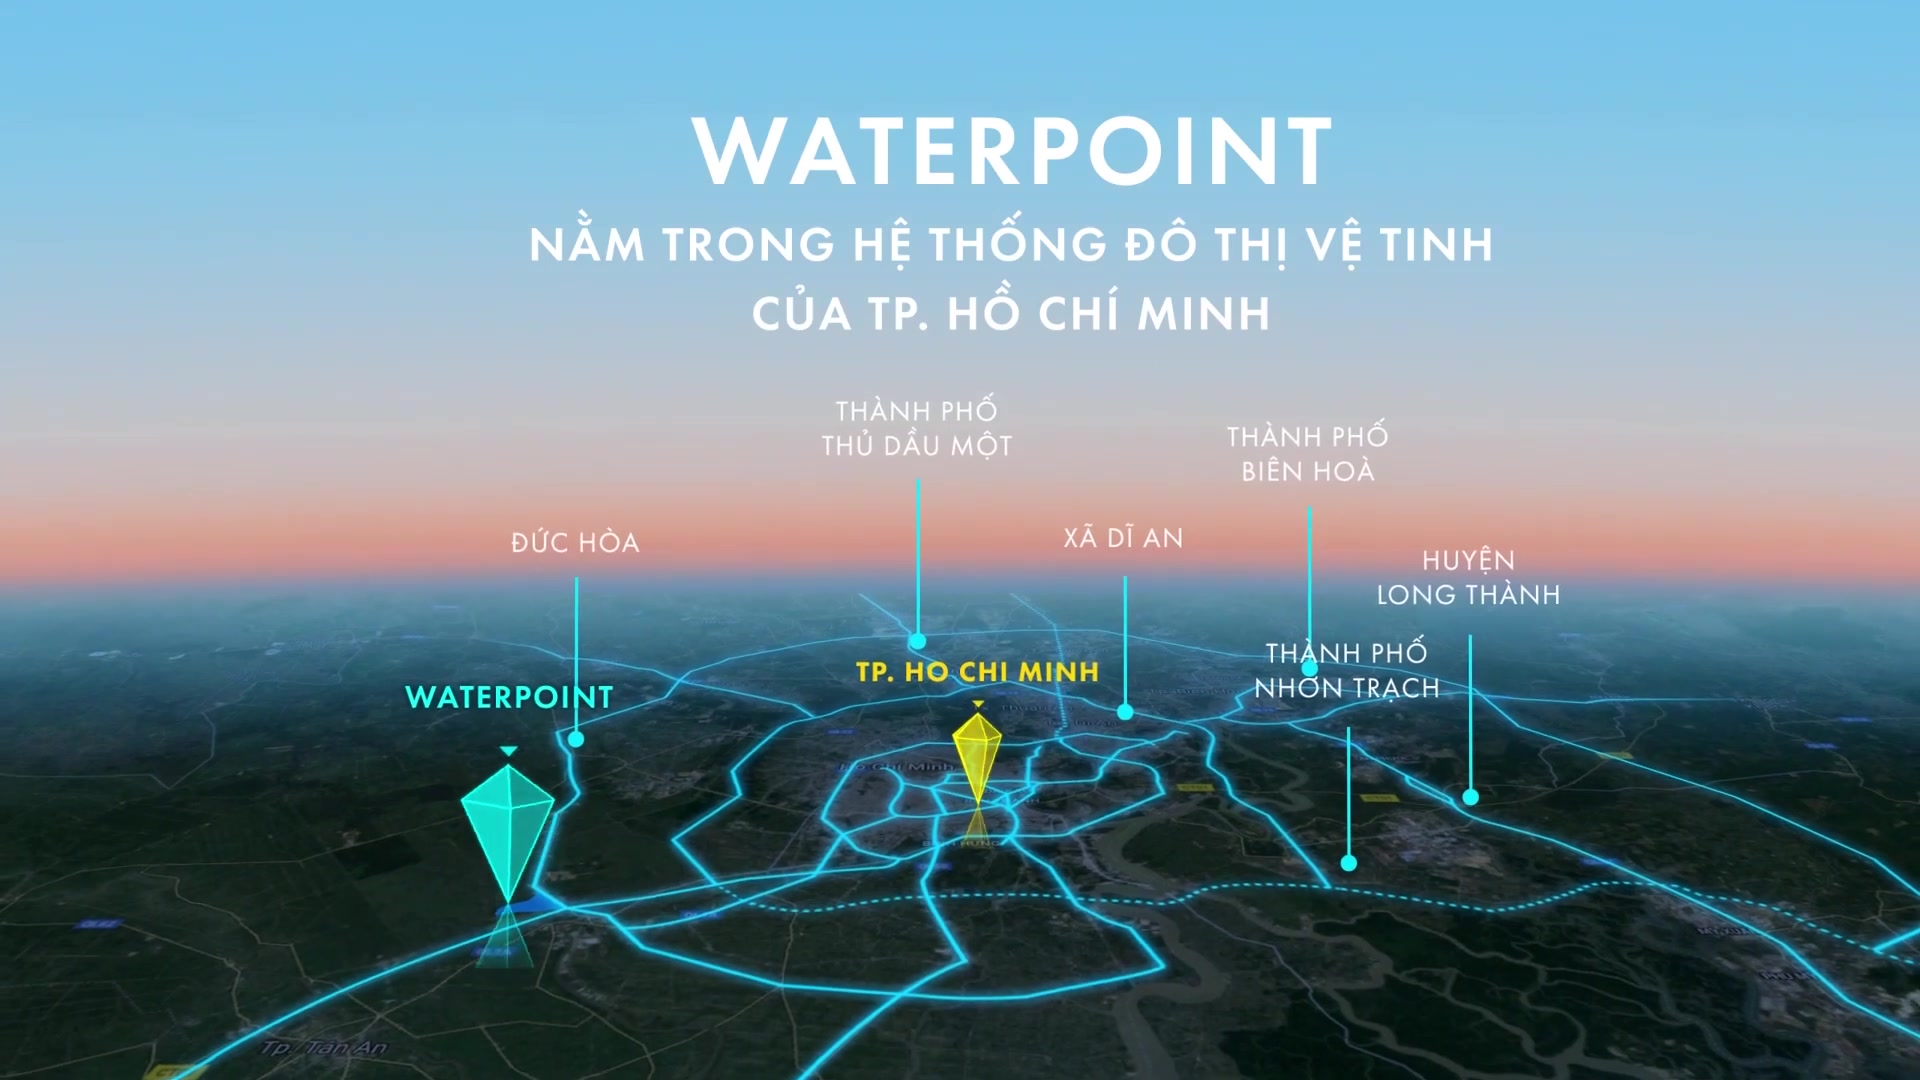 Dự án Waterpoint Nam Long